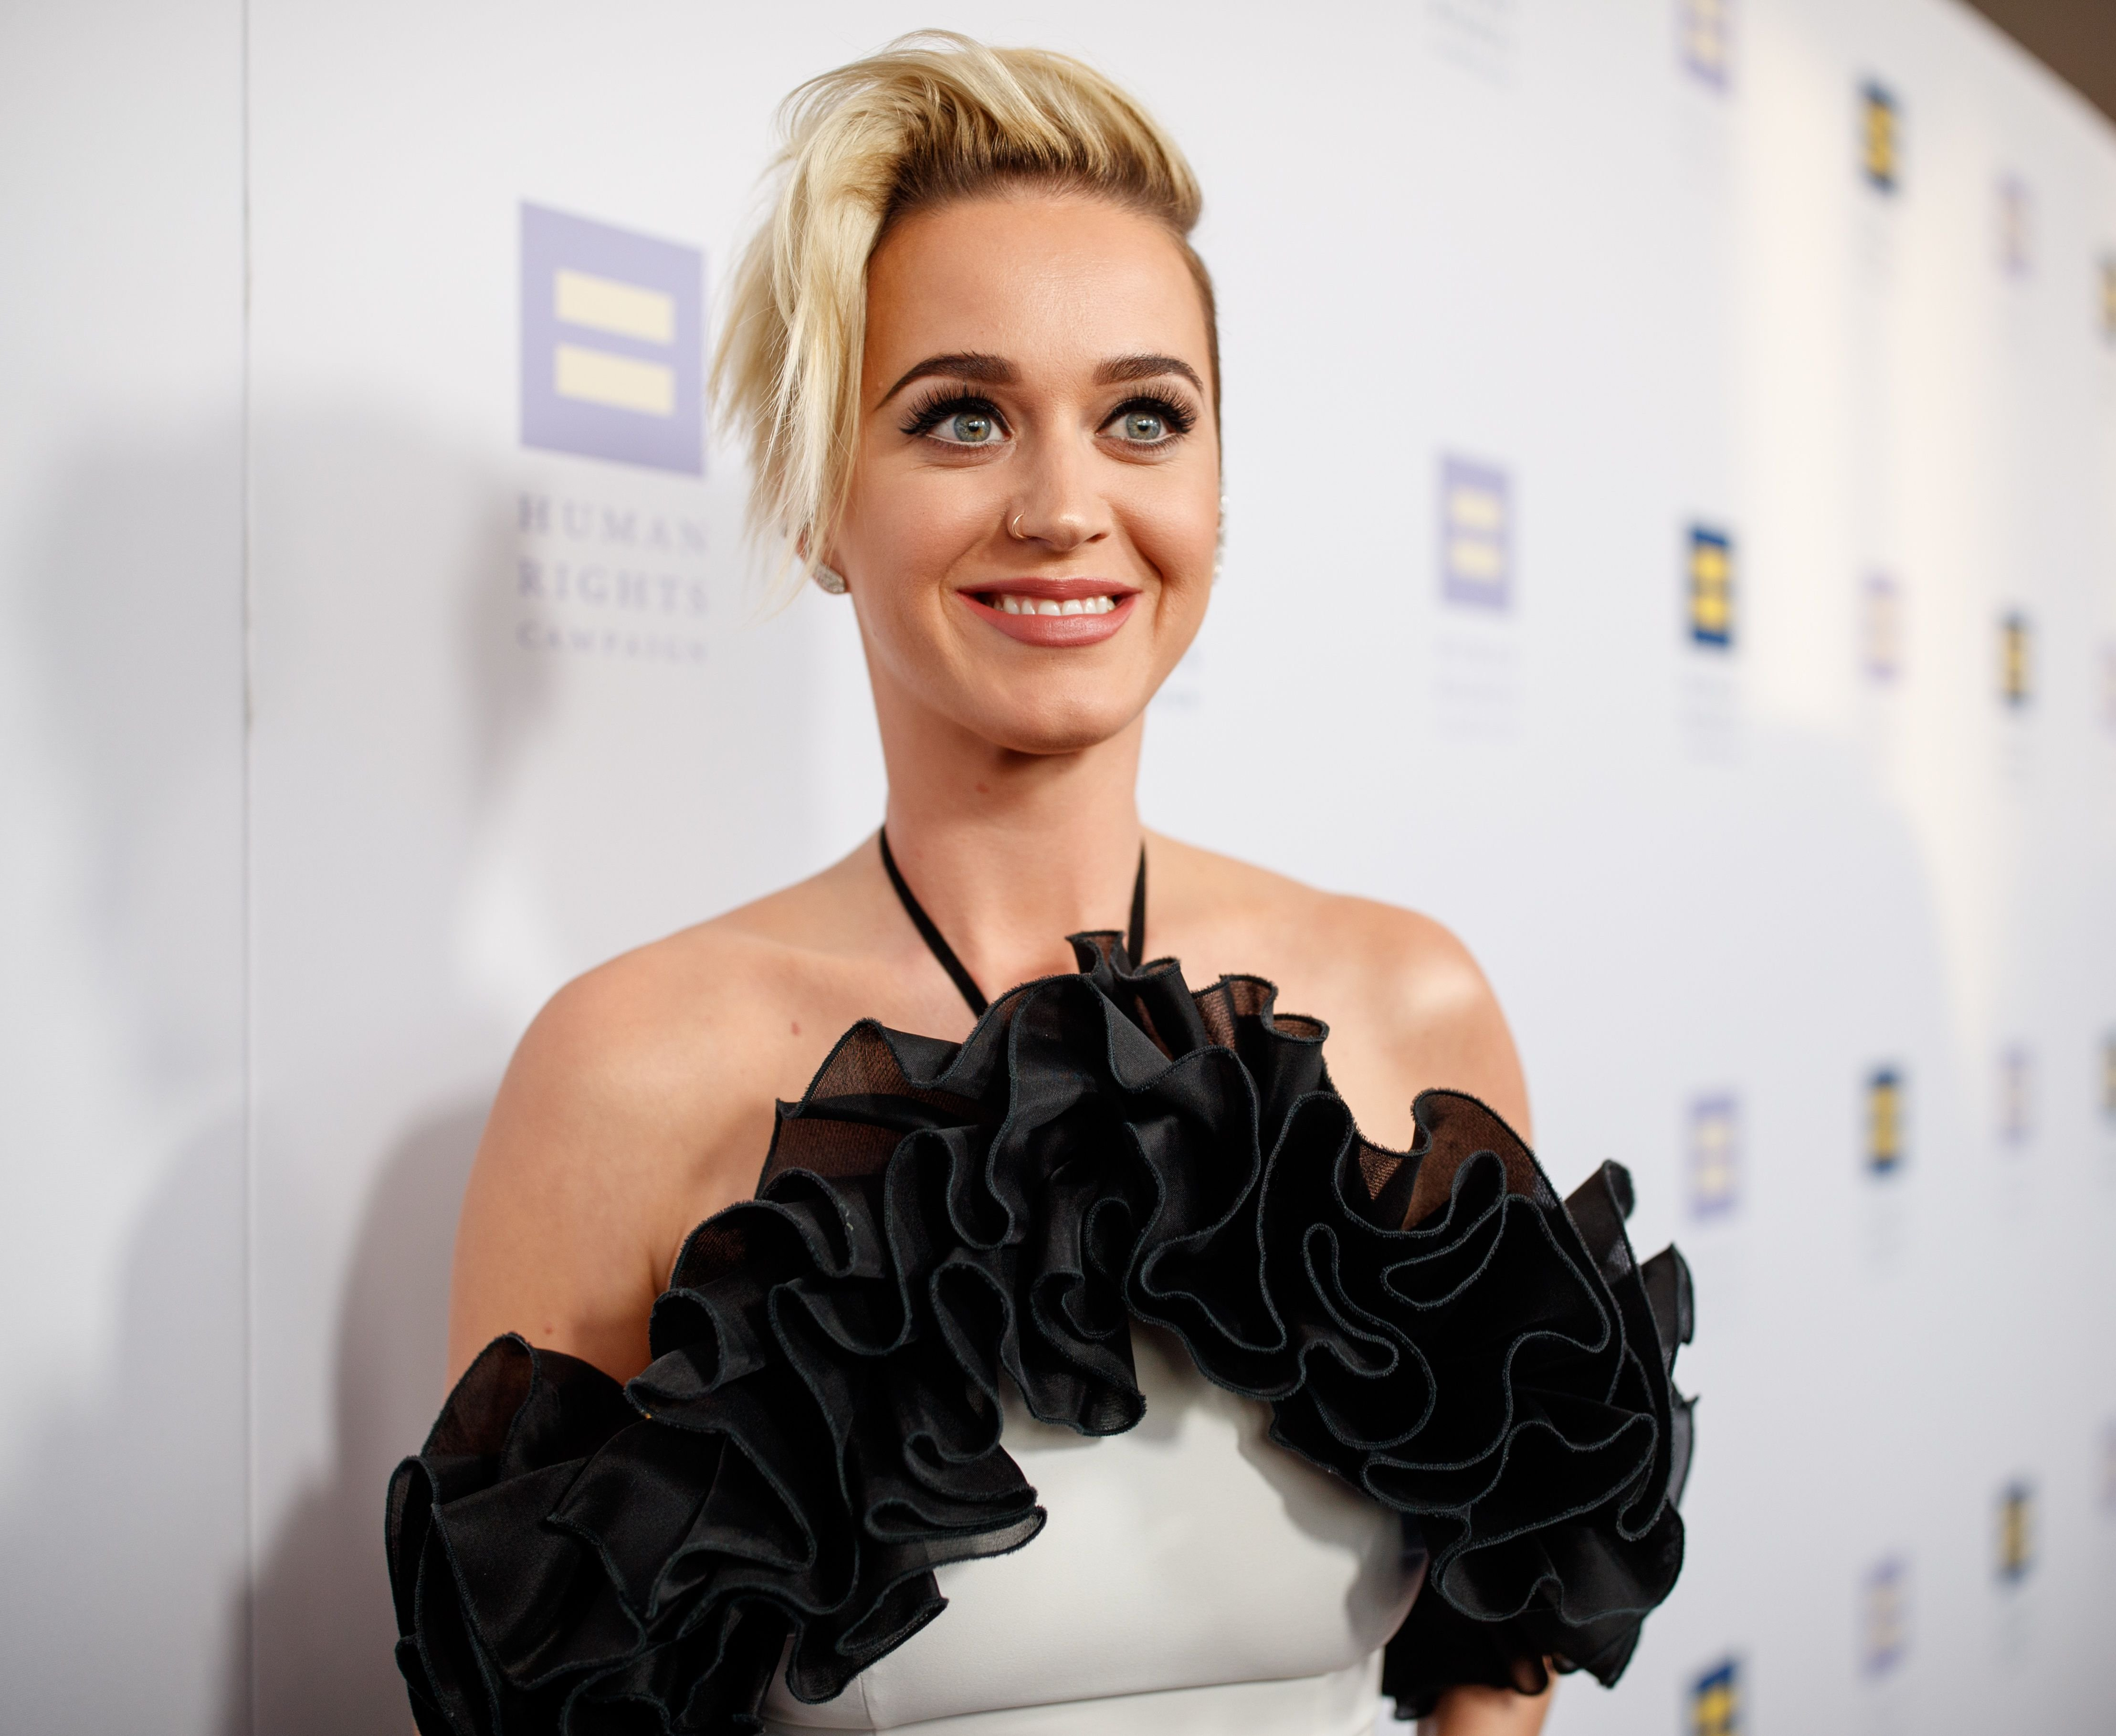 Katy Perry at The Human Rights Campaign Los Angeles Gala Dinner on March 18, 2017, in Los Angeles, California | Photo: Christopher Polk/Getty Images